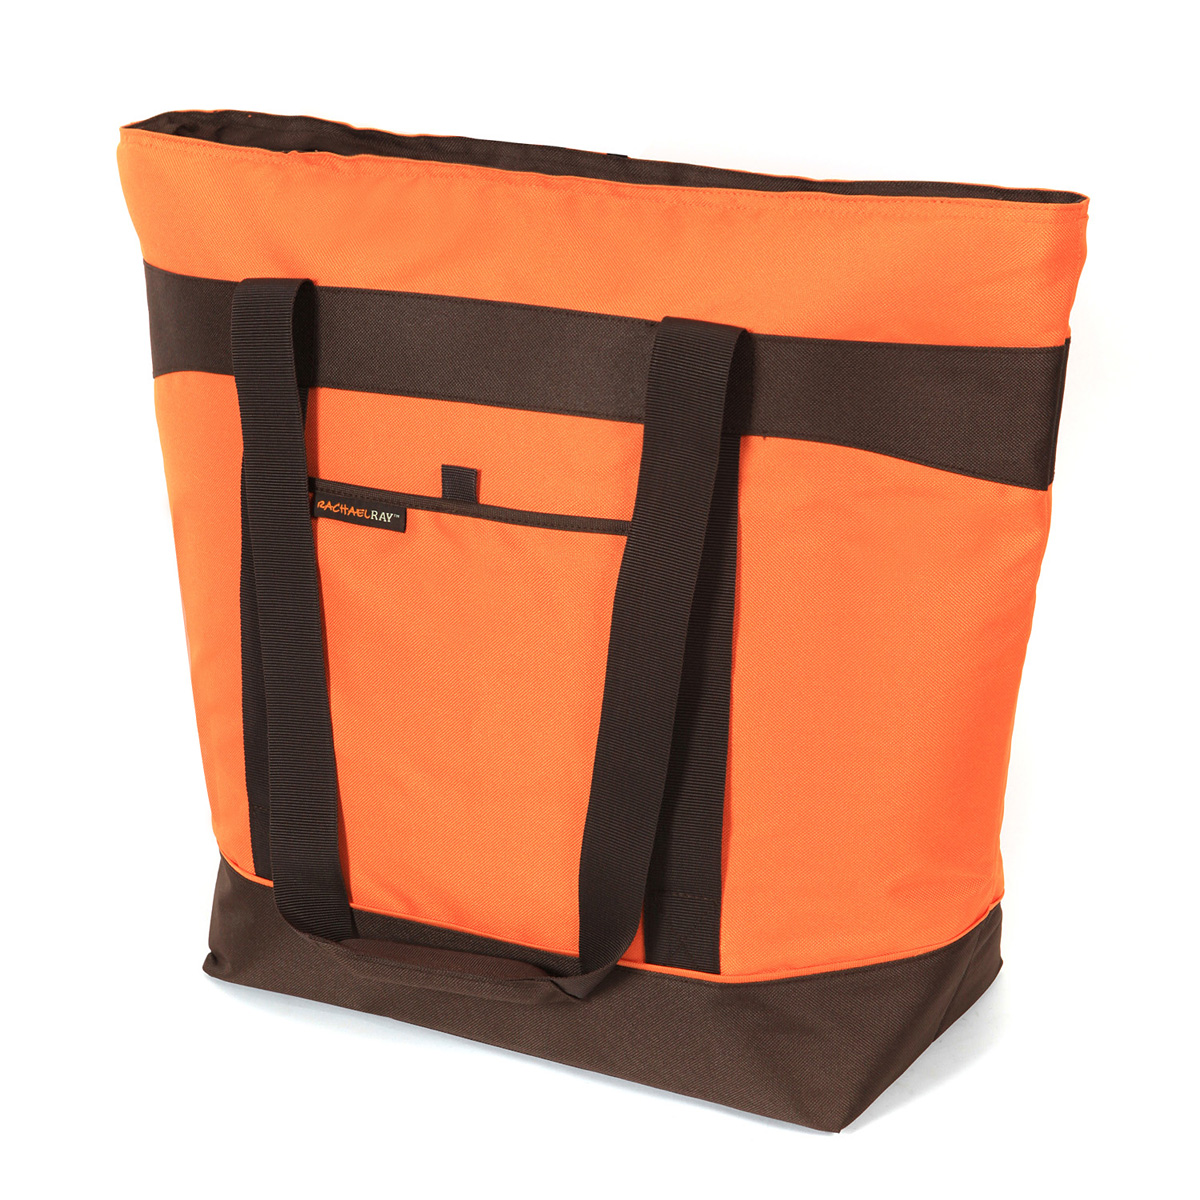 Rachael Ray Jumbo ChillOut Thermal Tote - Orange